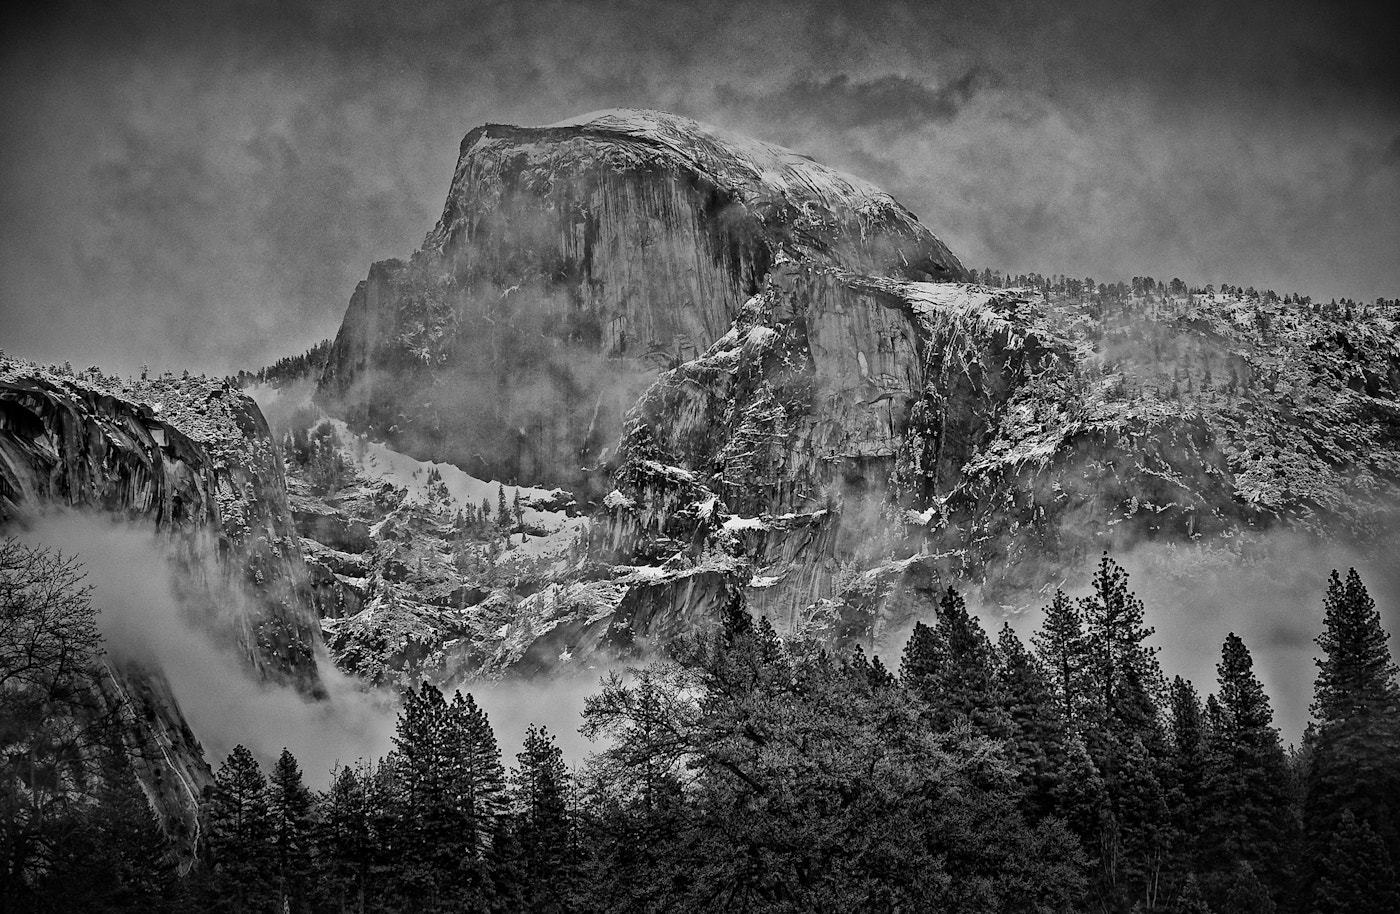 Photograph Storm Clears @ Yosemite by Jaime Martorano on 500px